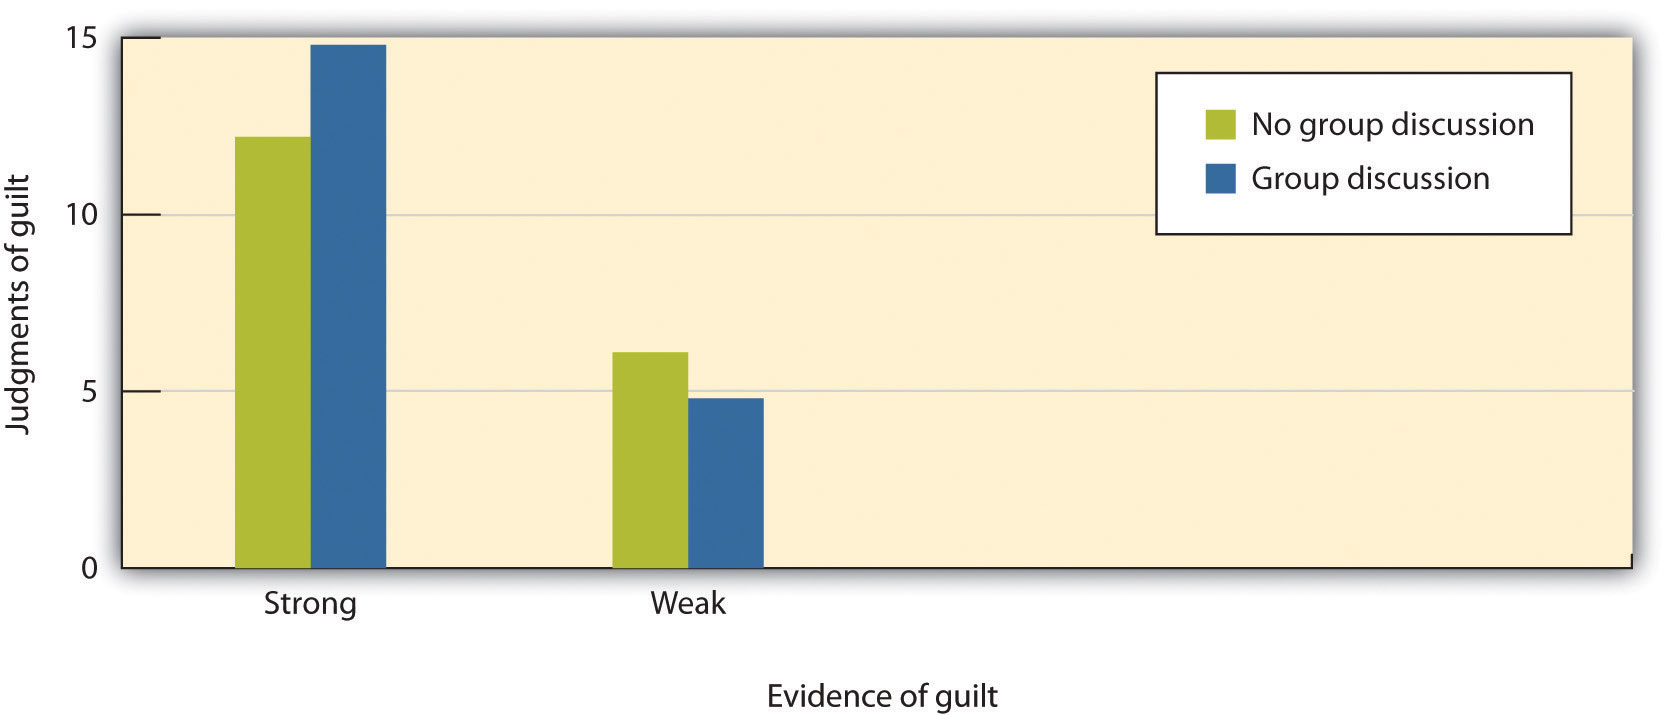 The juries in this research were given either strong or weak evidence about the guilt of a defendant and then were either allowed or not allowed to discuss the evidence before making a final decision. Demonstrating group polarization, the juries that discussed the case made significantly more extreme decisions than did the juries that did not discuss the case.